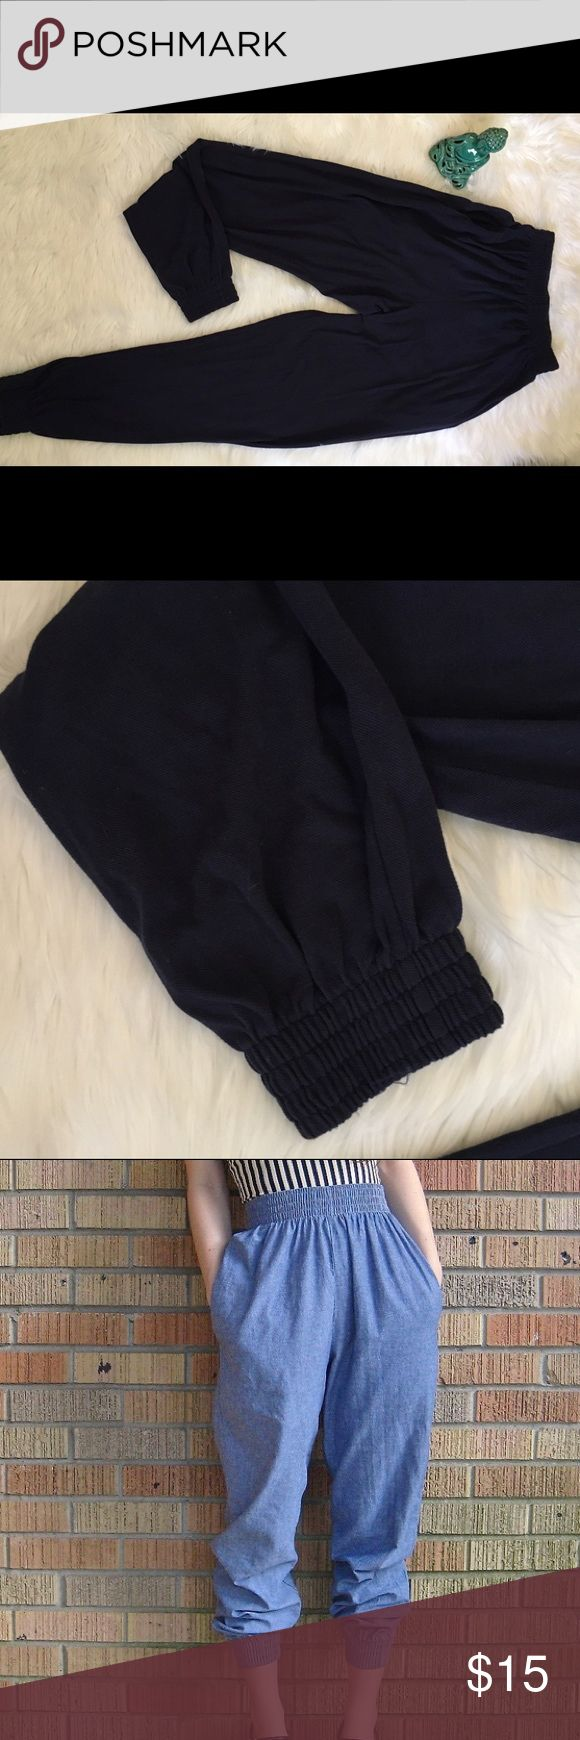 Navy Blue American Apparel Harem Pants in size M. Harem pants with elastication at waist and hems. American Apparel Pants